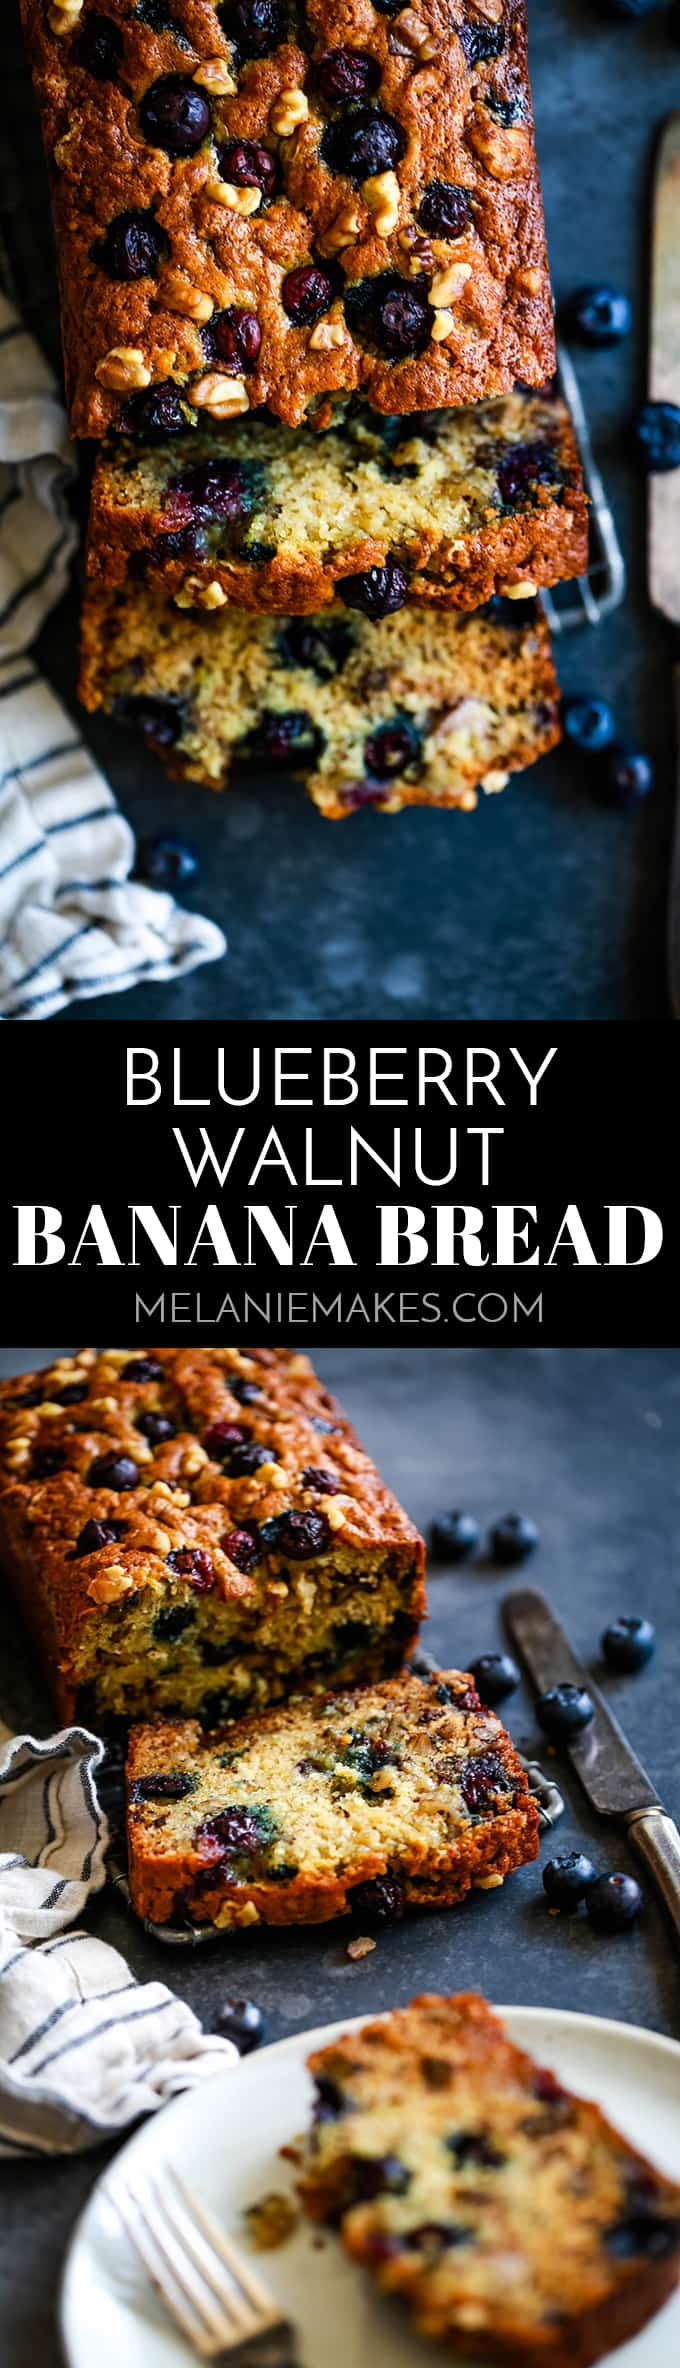 Each loaf of this Blueberry Walnut Banana Bread is packed with four bananas and a cup each of walnuts and blueberries.  It's no wonder it disappears so quickly! #blueberry #walnut #banana #bananabread #bread #easyrecipe